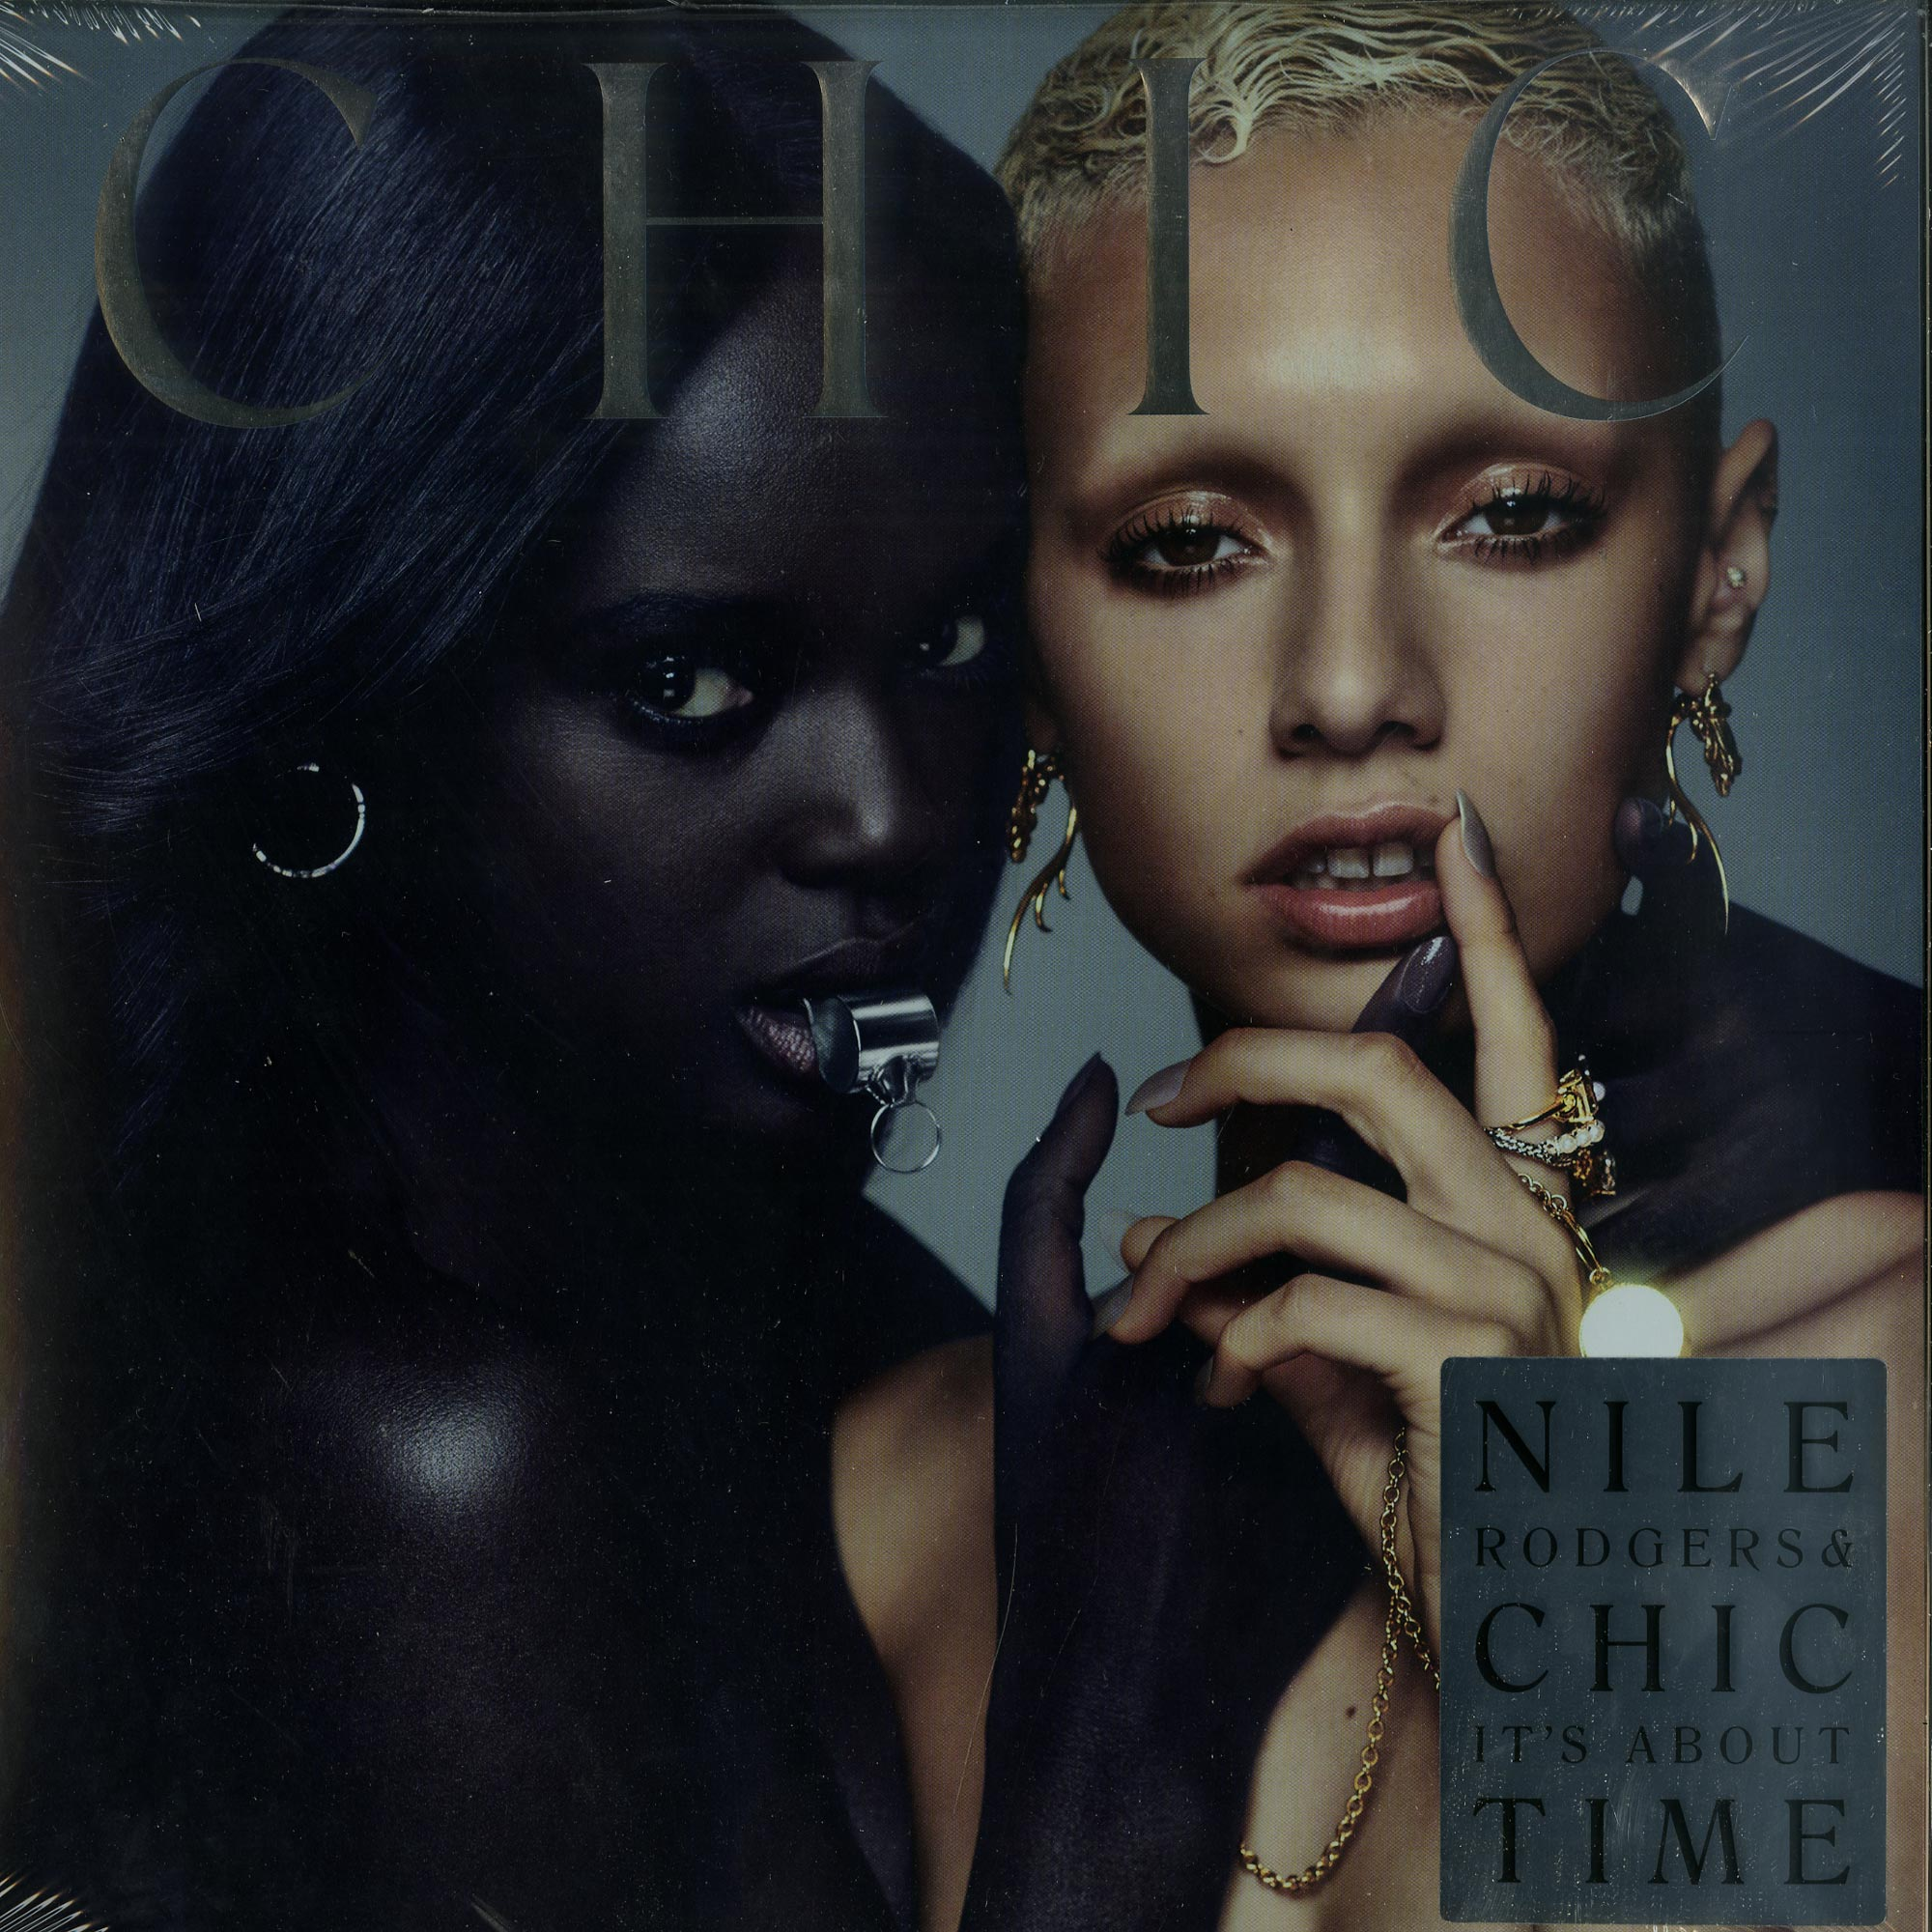 Nile Rodgers & Chic - ITS ABOUT TIME